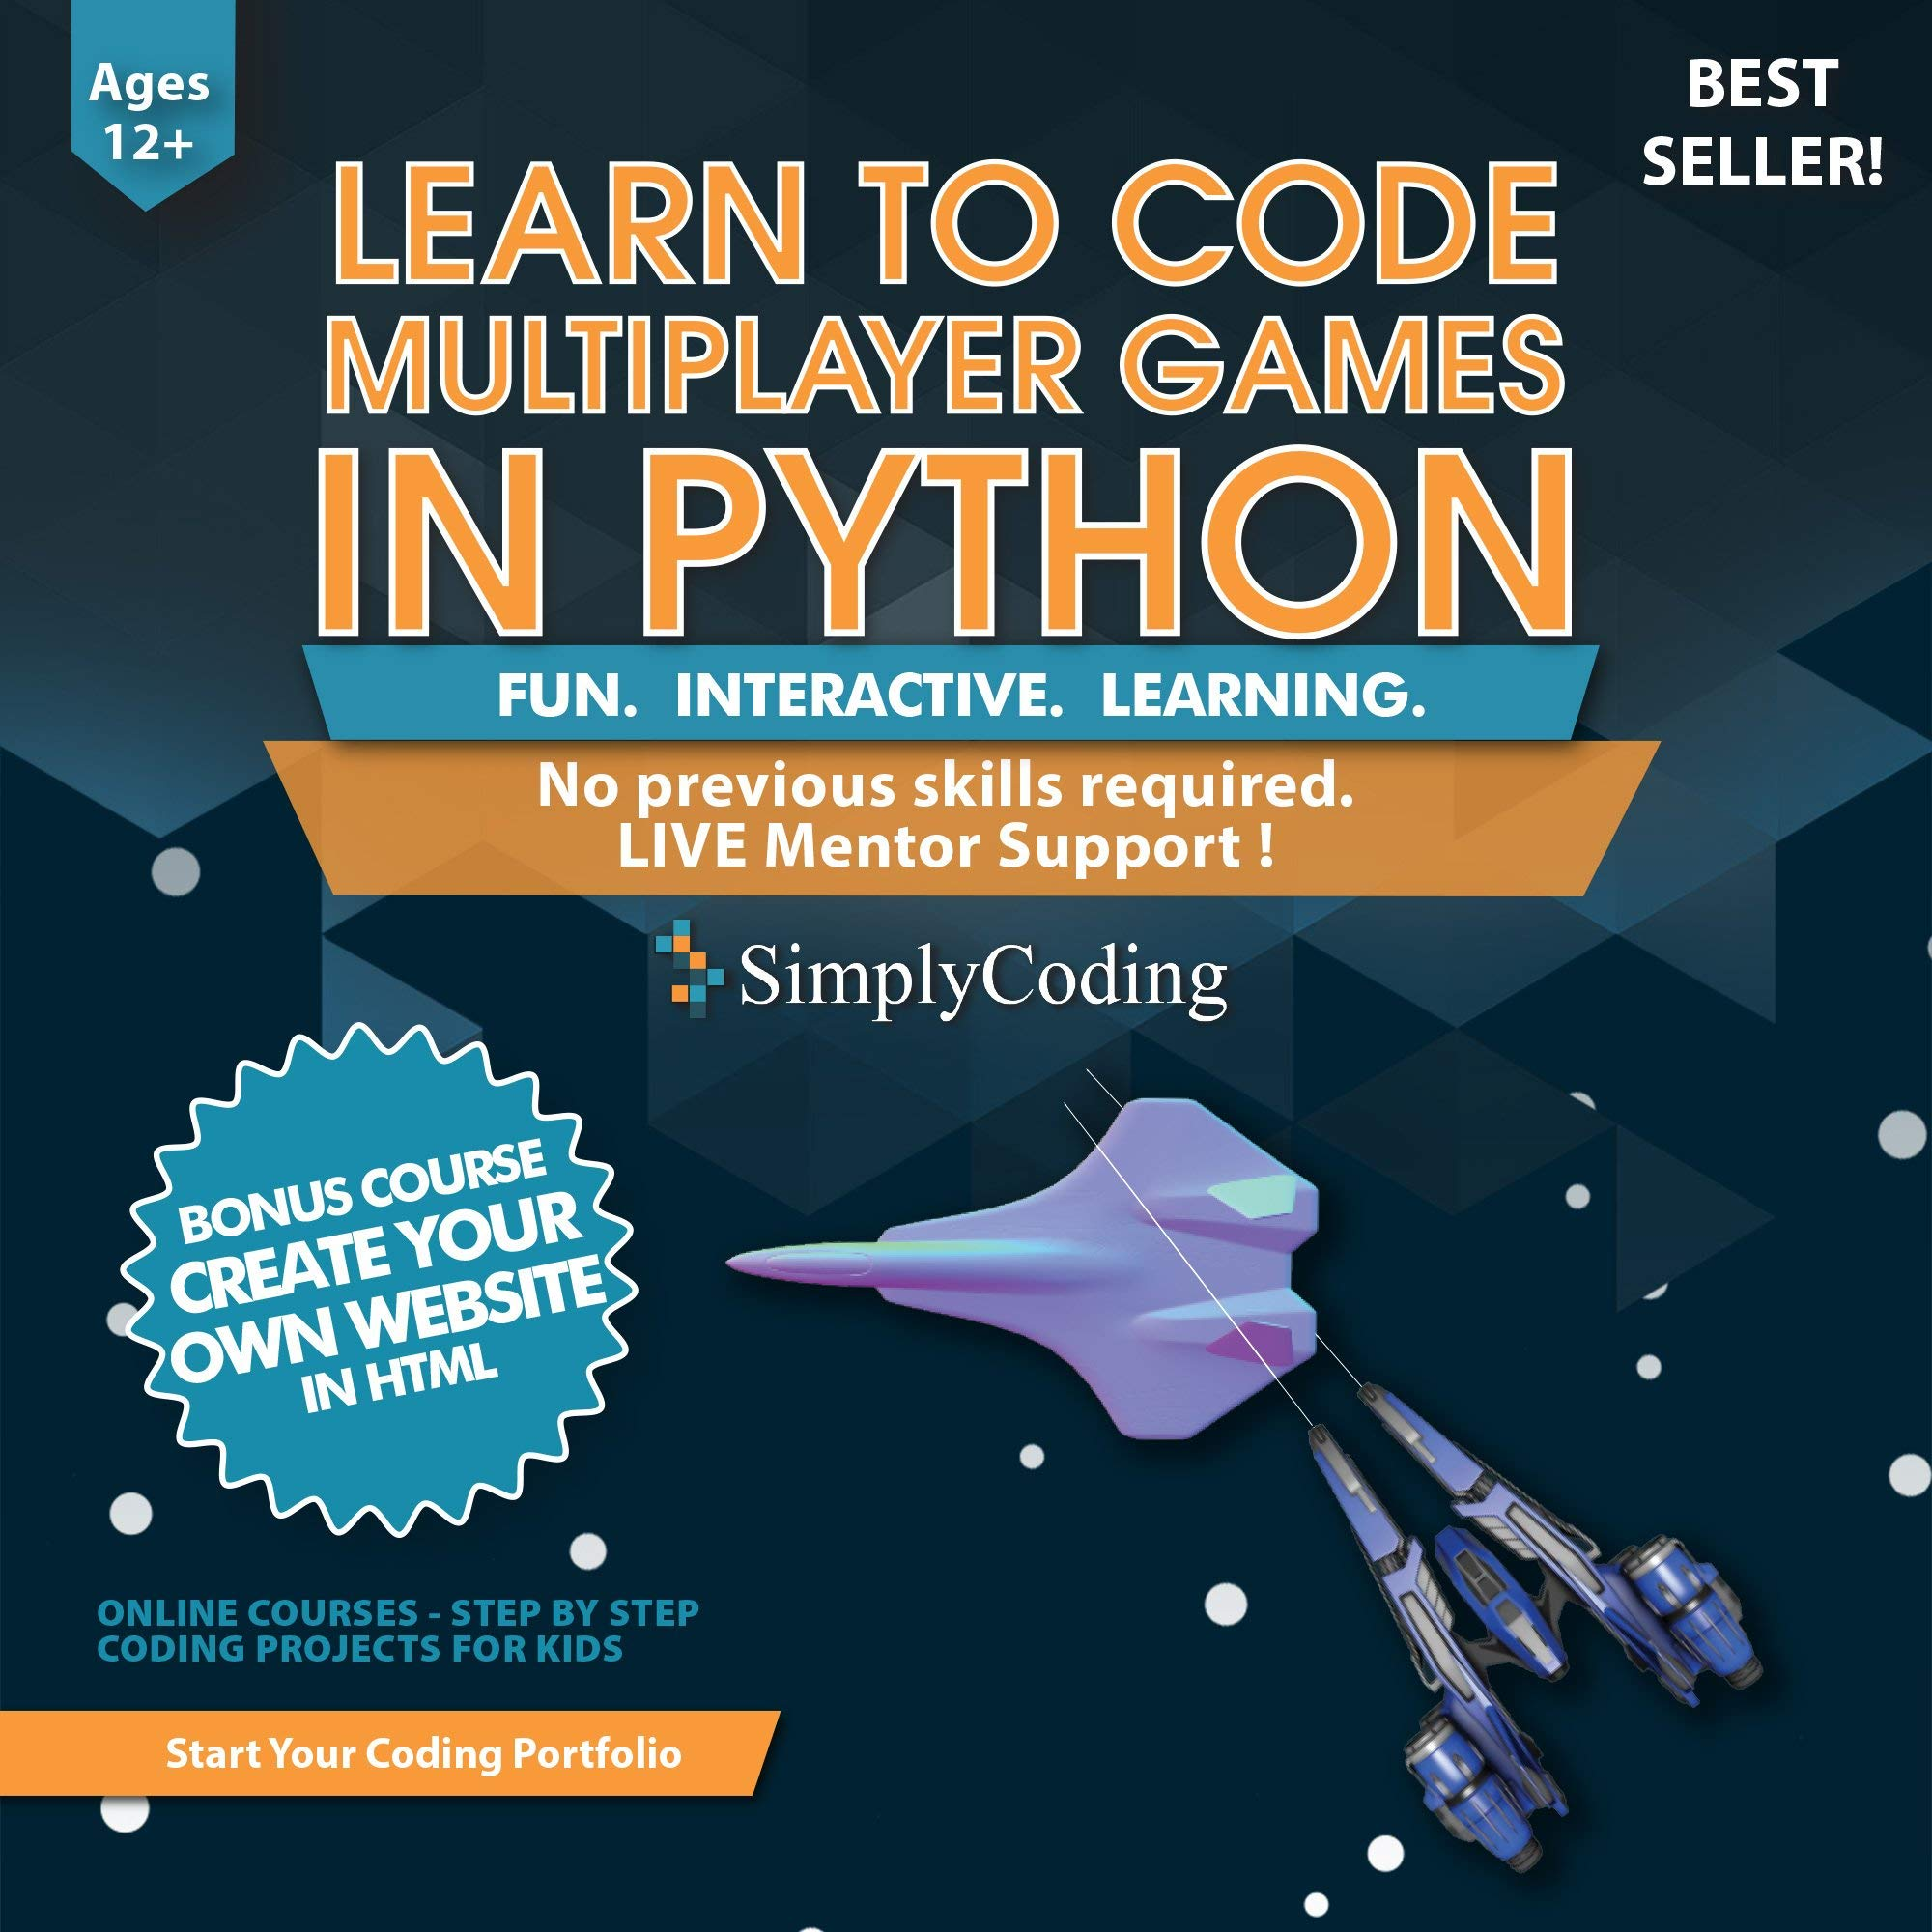 Simply Coding for Kids: Learn to Code Python Multiplayer Adventure Games - Video Game Design Coding Software - Computer Programming for Kids, Ages 12-18, (PC, Mac Compatible) by Simply Coding